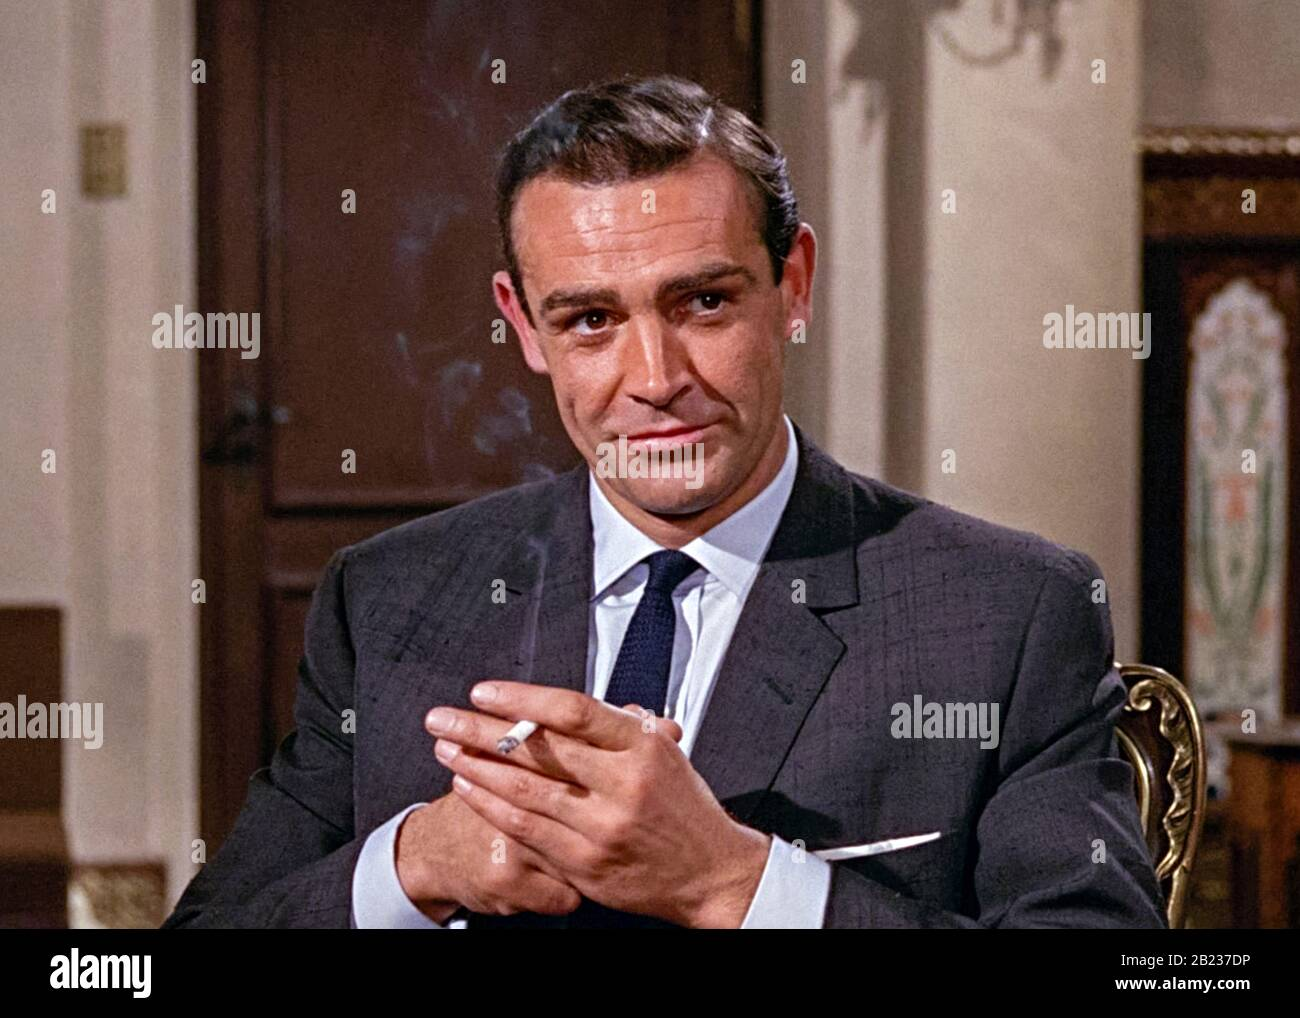 James Bond Sean Connery Portrait High Resolution Stock Photography And Images Alamy